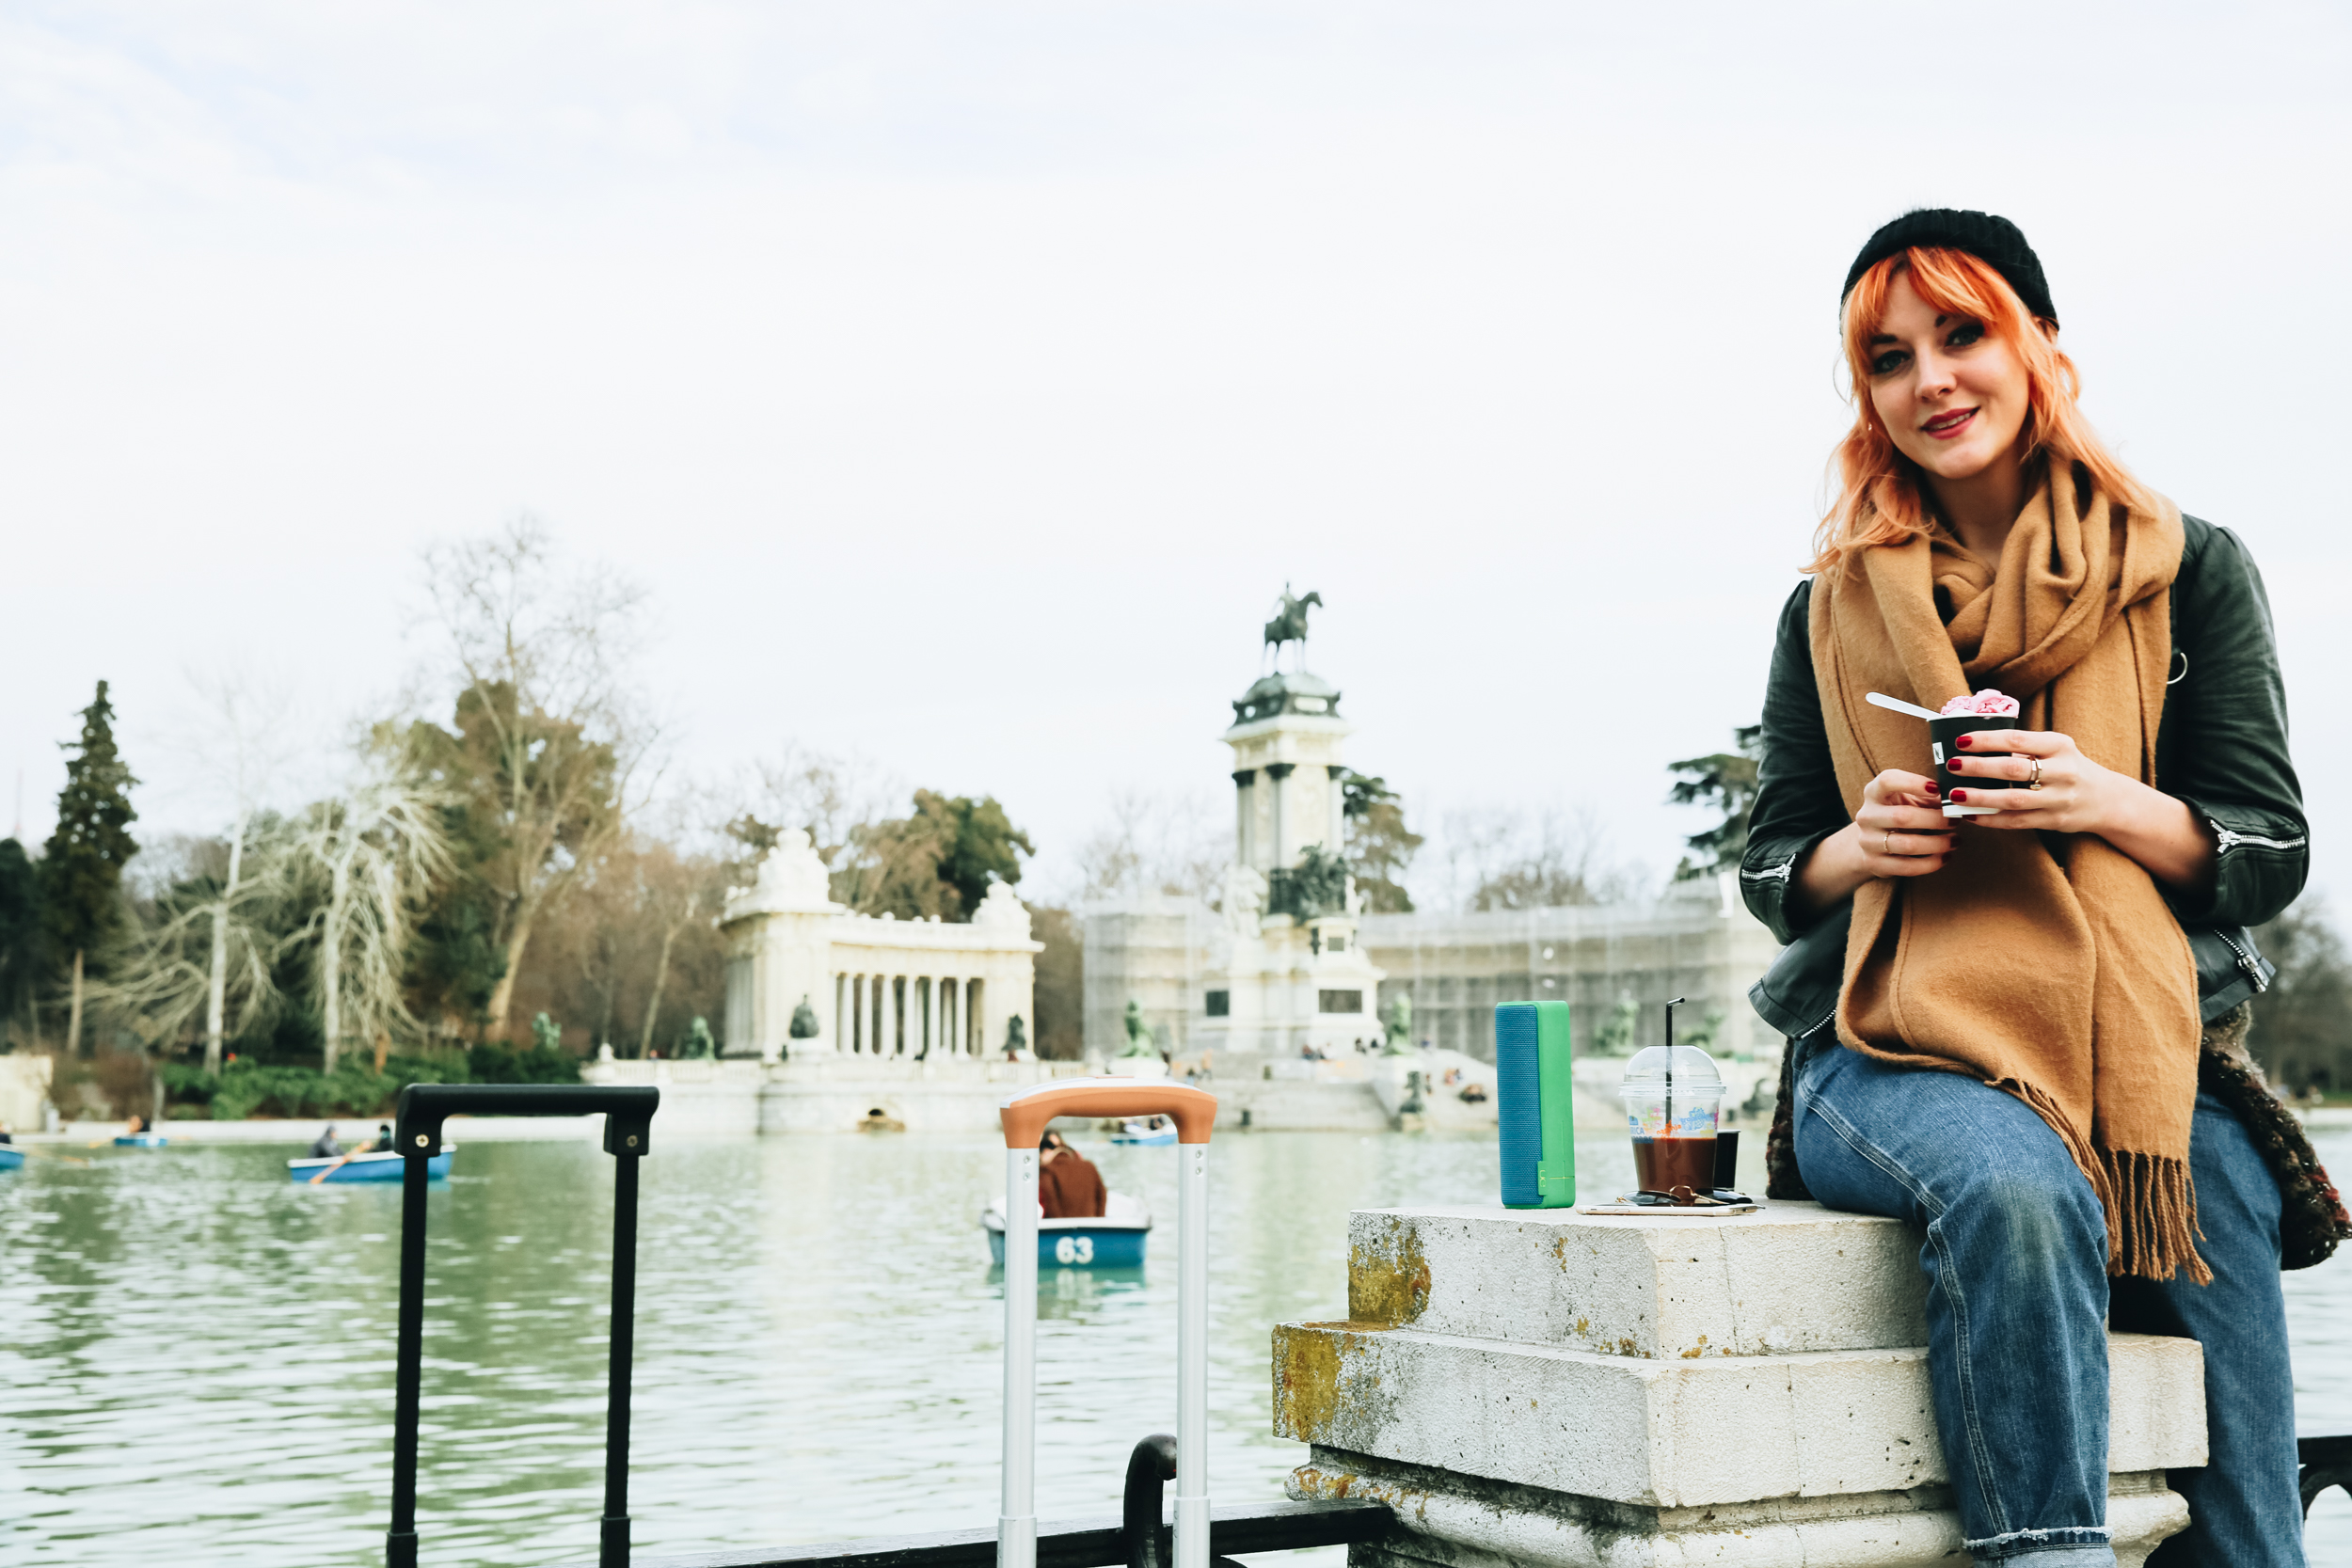 Sightseeing at Madrid's Retiro Park and testing out the UE BOOM 2 portable speaker